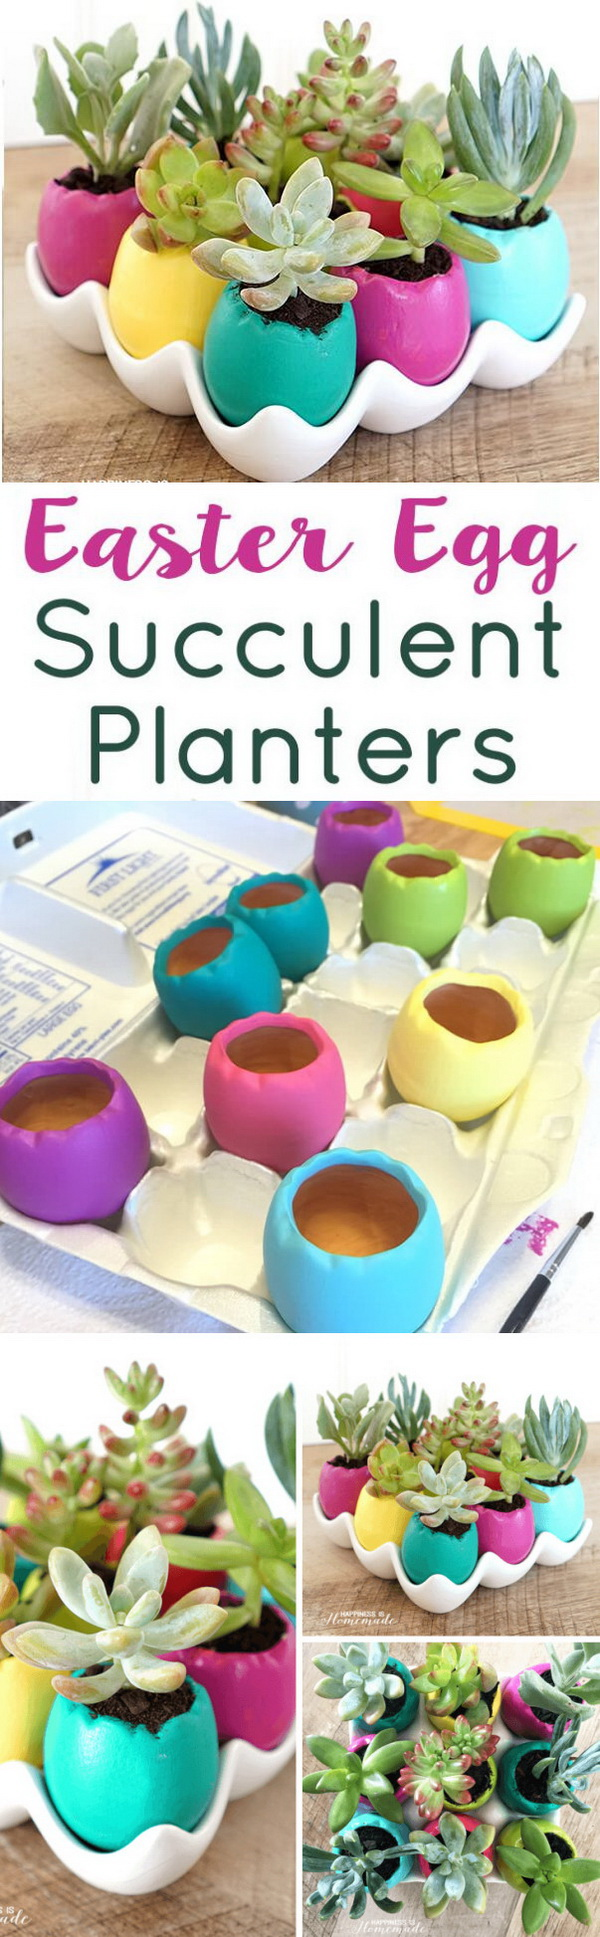 DIY Easter Decoration Ideas: Easter Egg Succulent Planters.